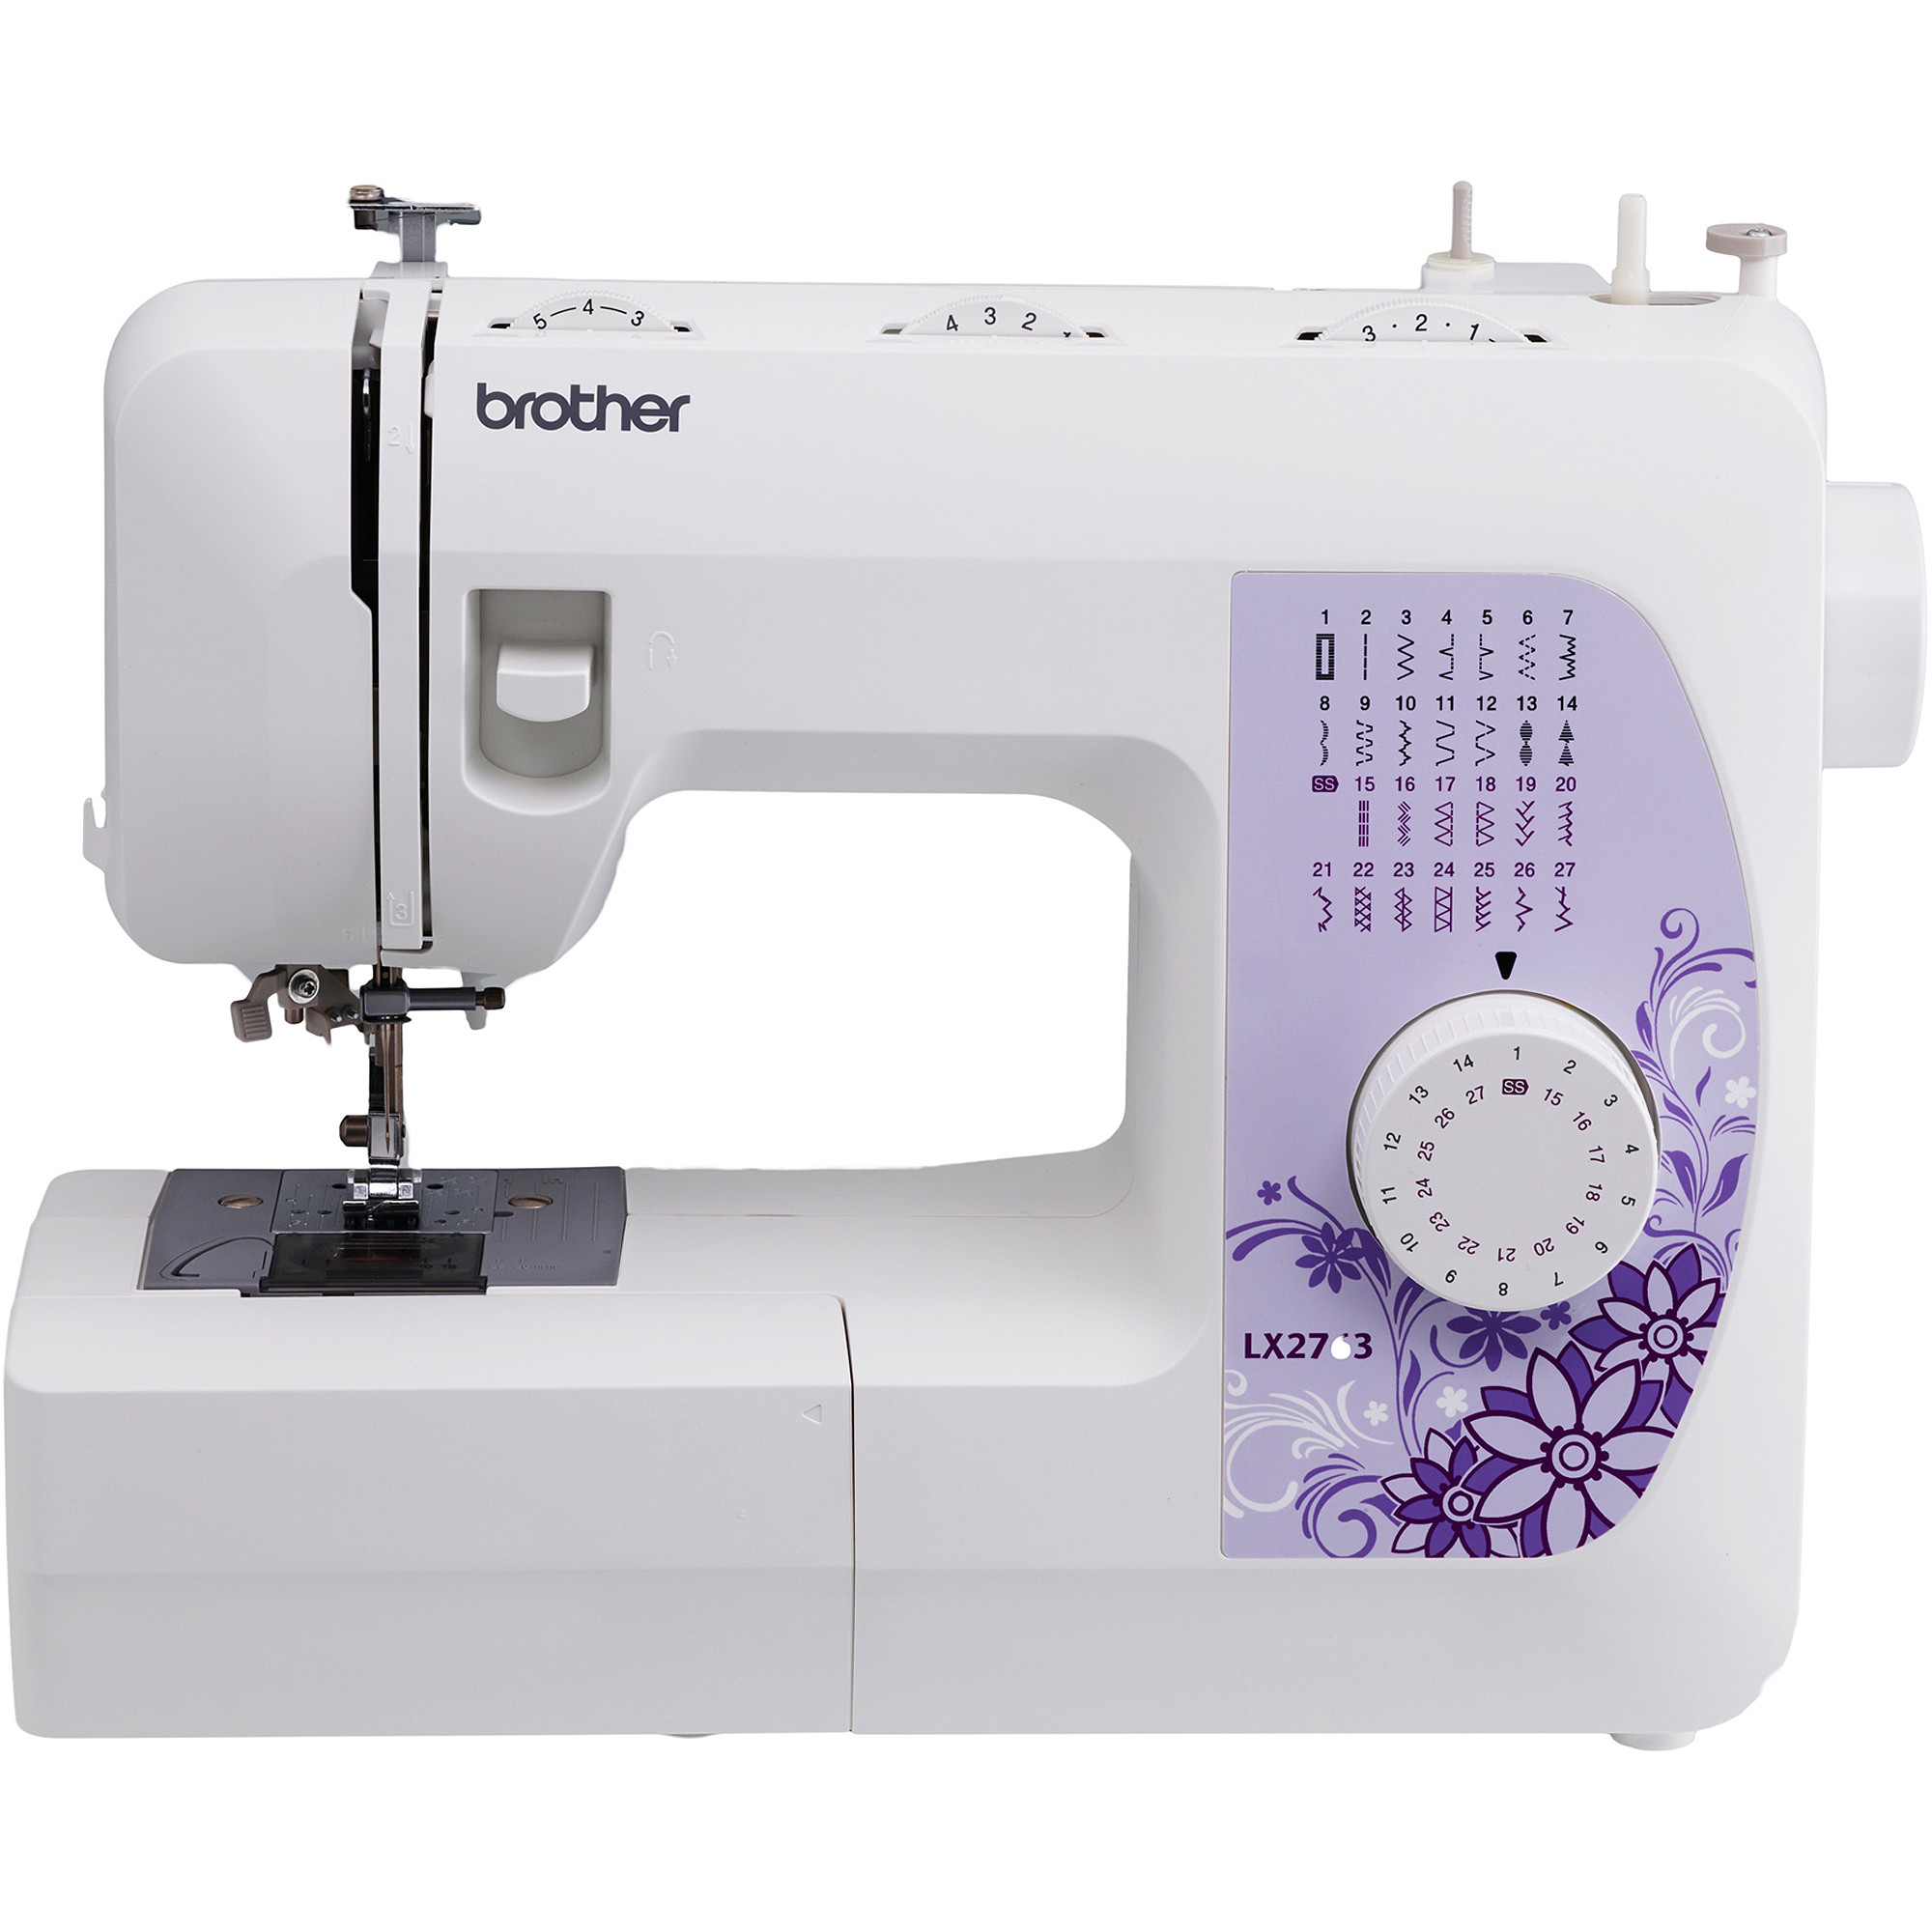 Sewing and Embroidery Machine Awesome Brother 27 Stitch Sewing Machine Drop In Bobbin Portable Of Unique 48 Pics Sewing and Embroidery Machine